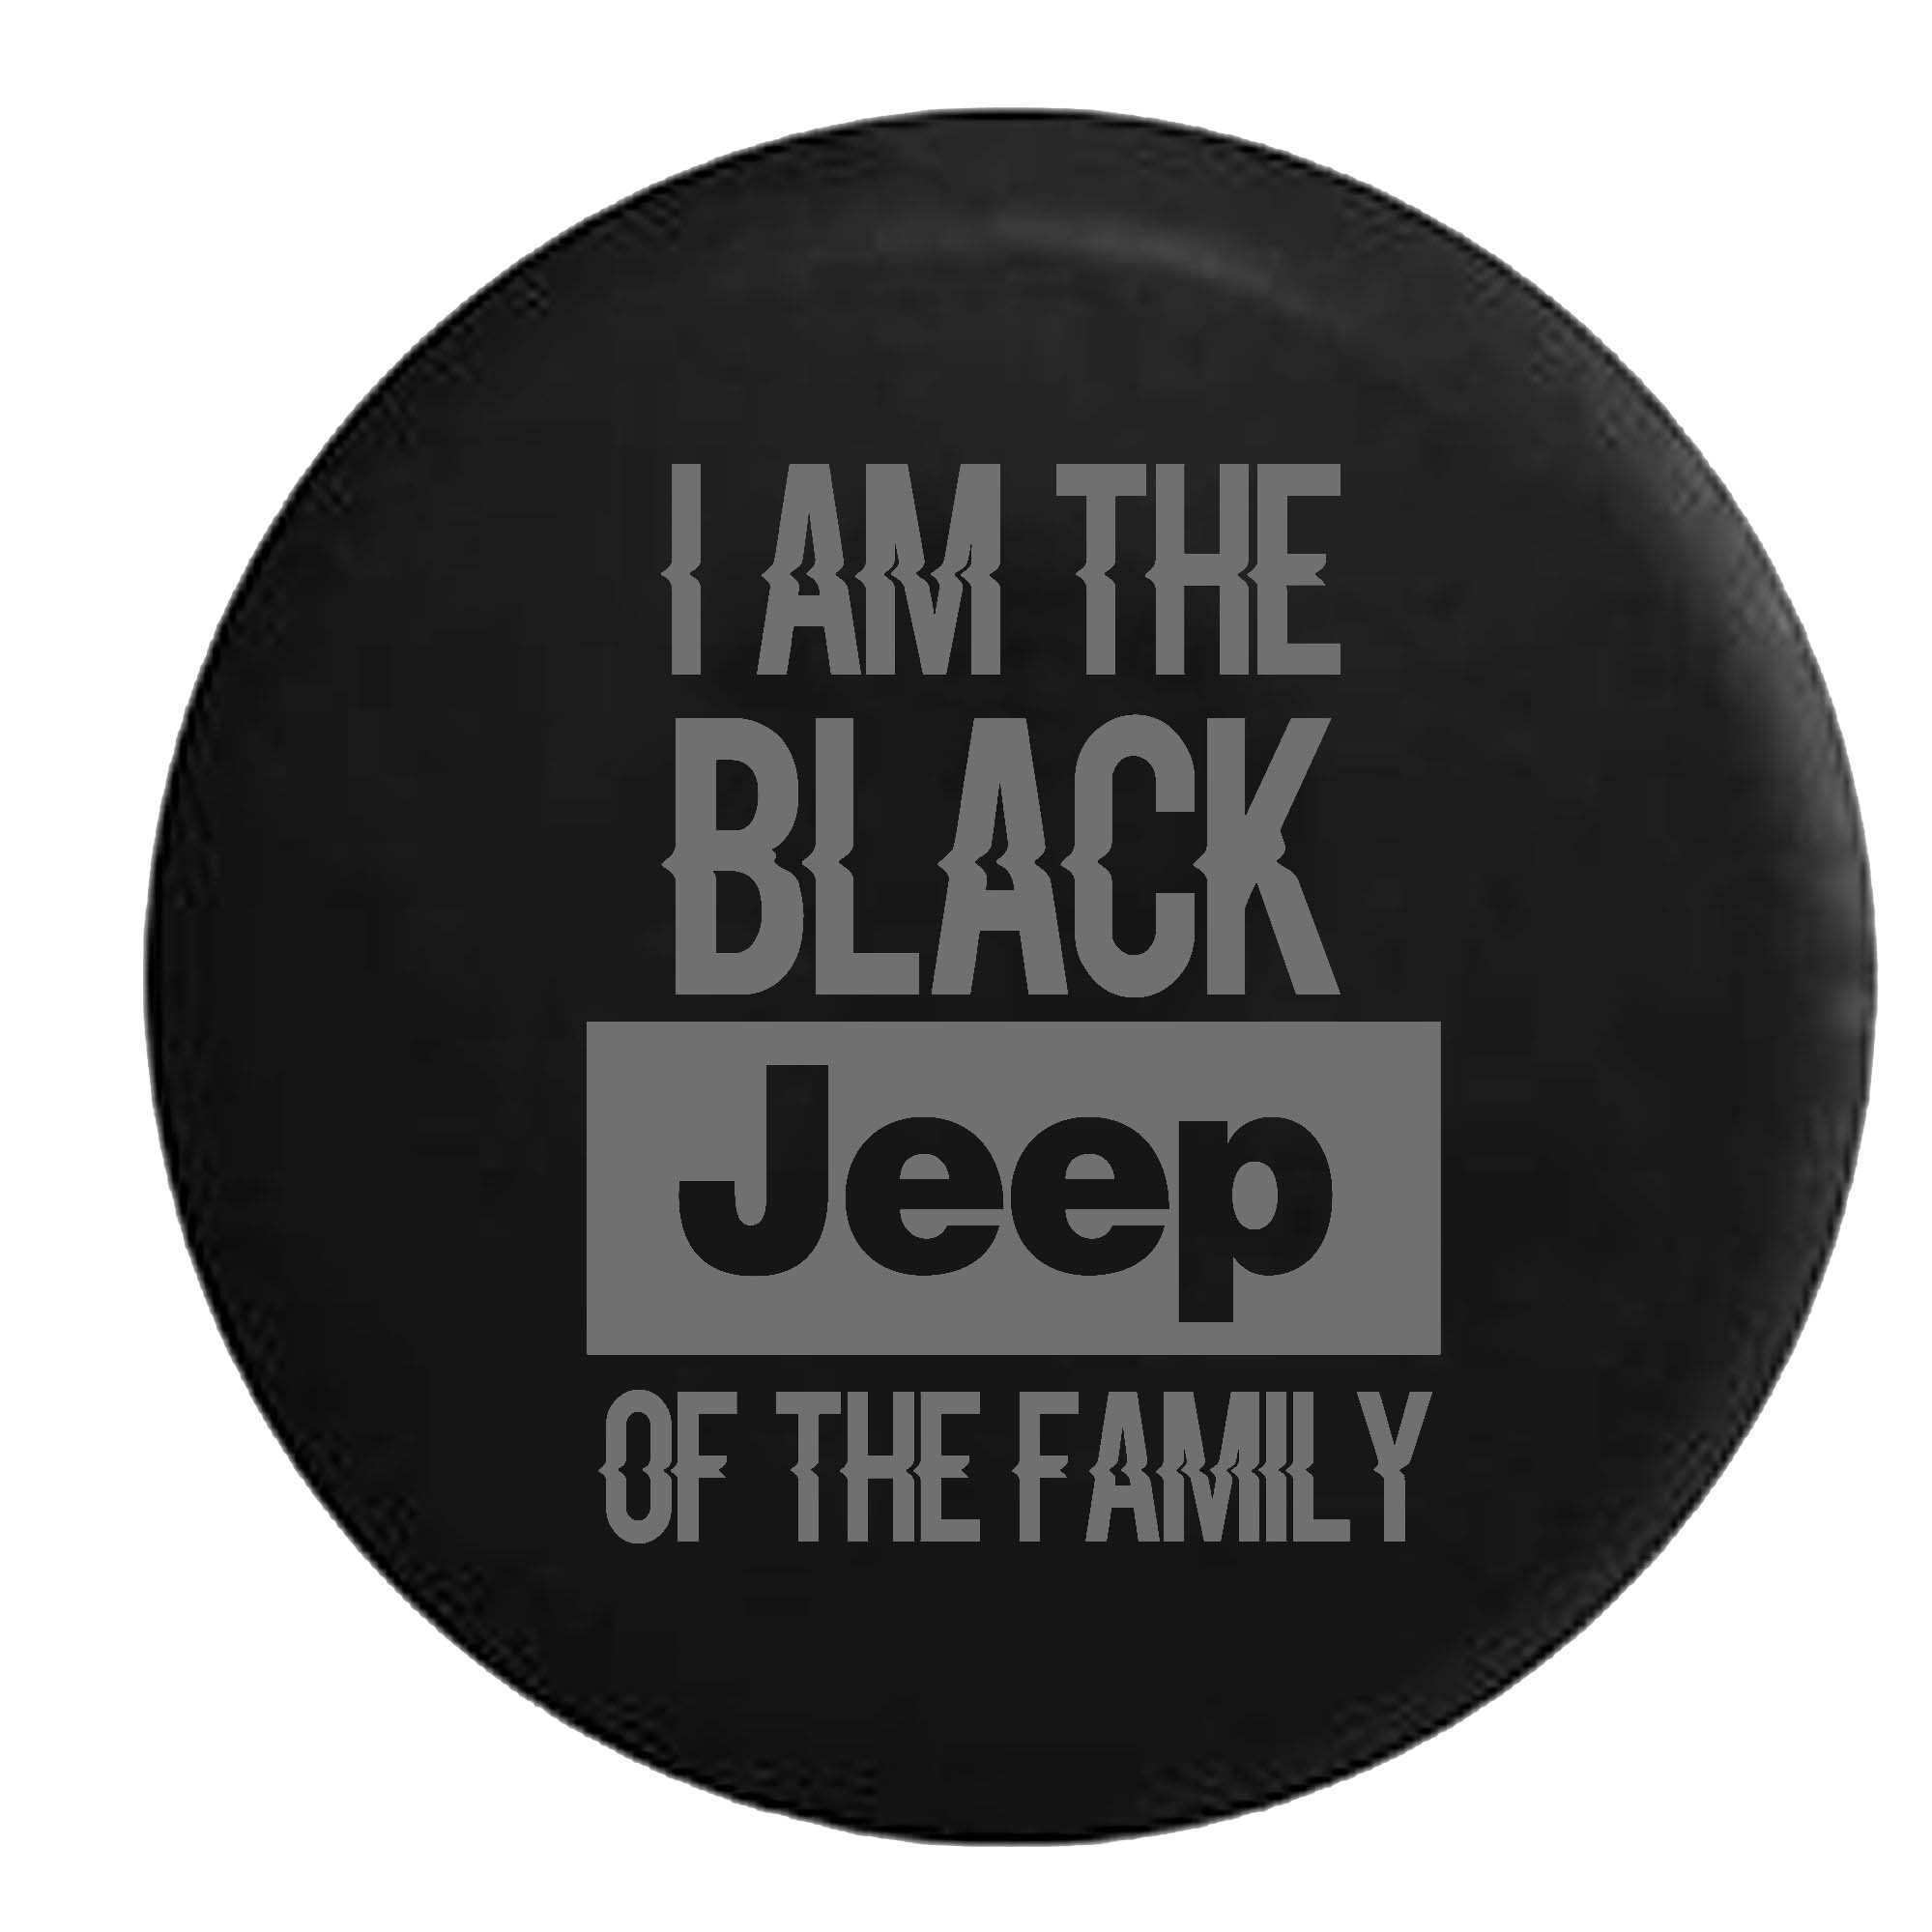 Stealth - Black Jeep of the Family Spare Tire Cover Vinyl Black 31 in